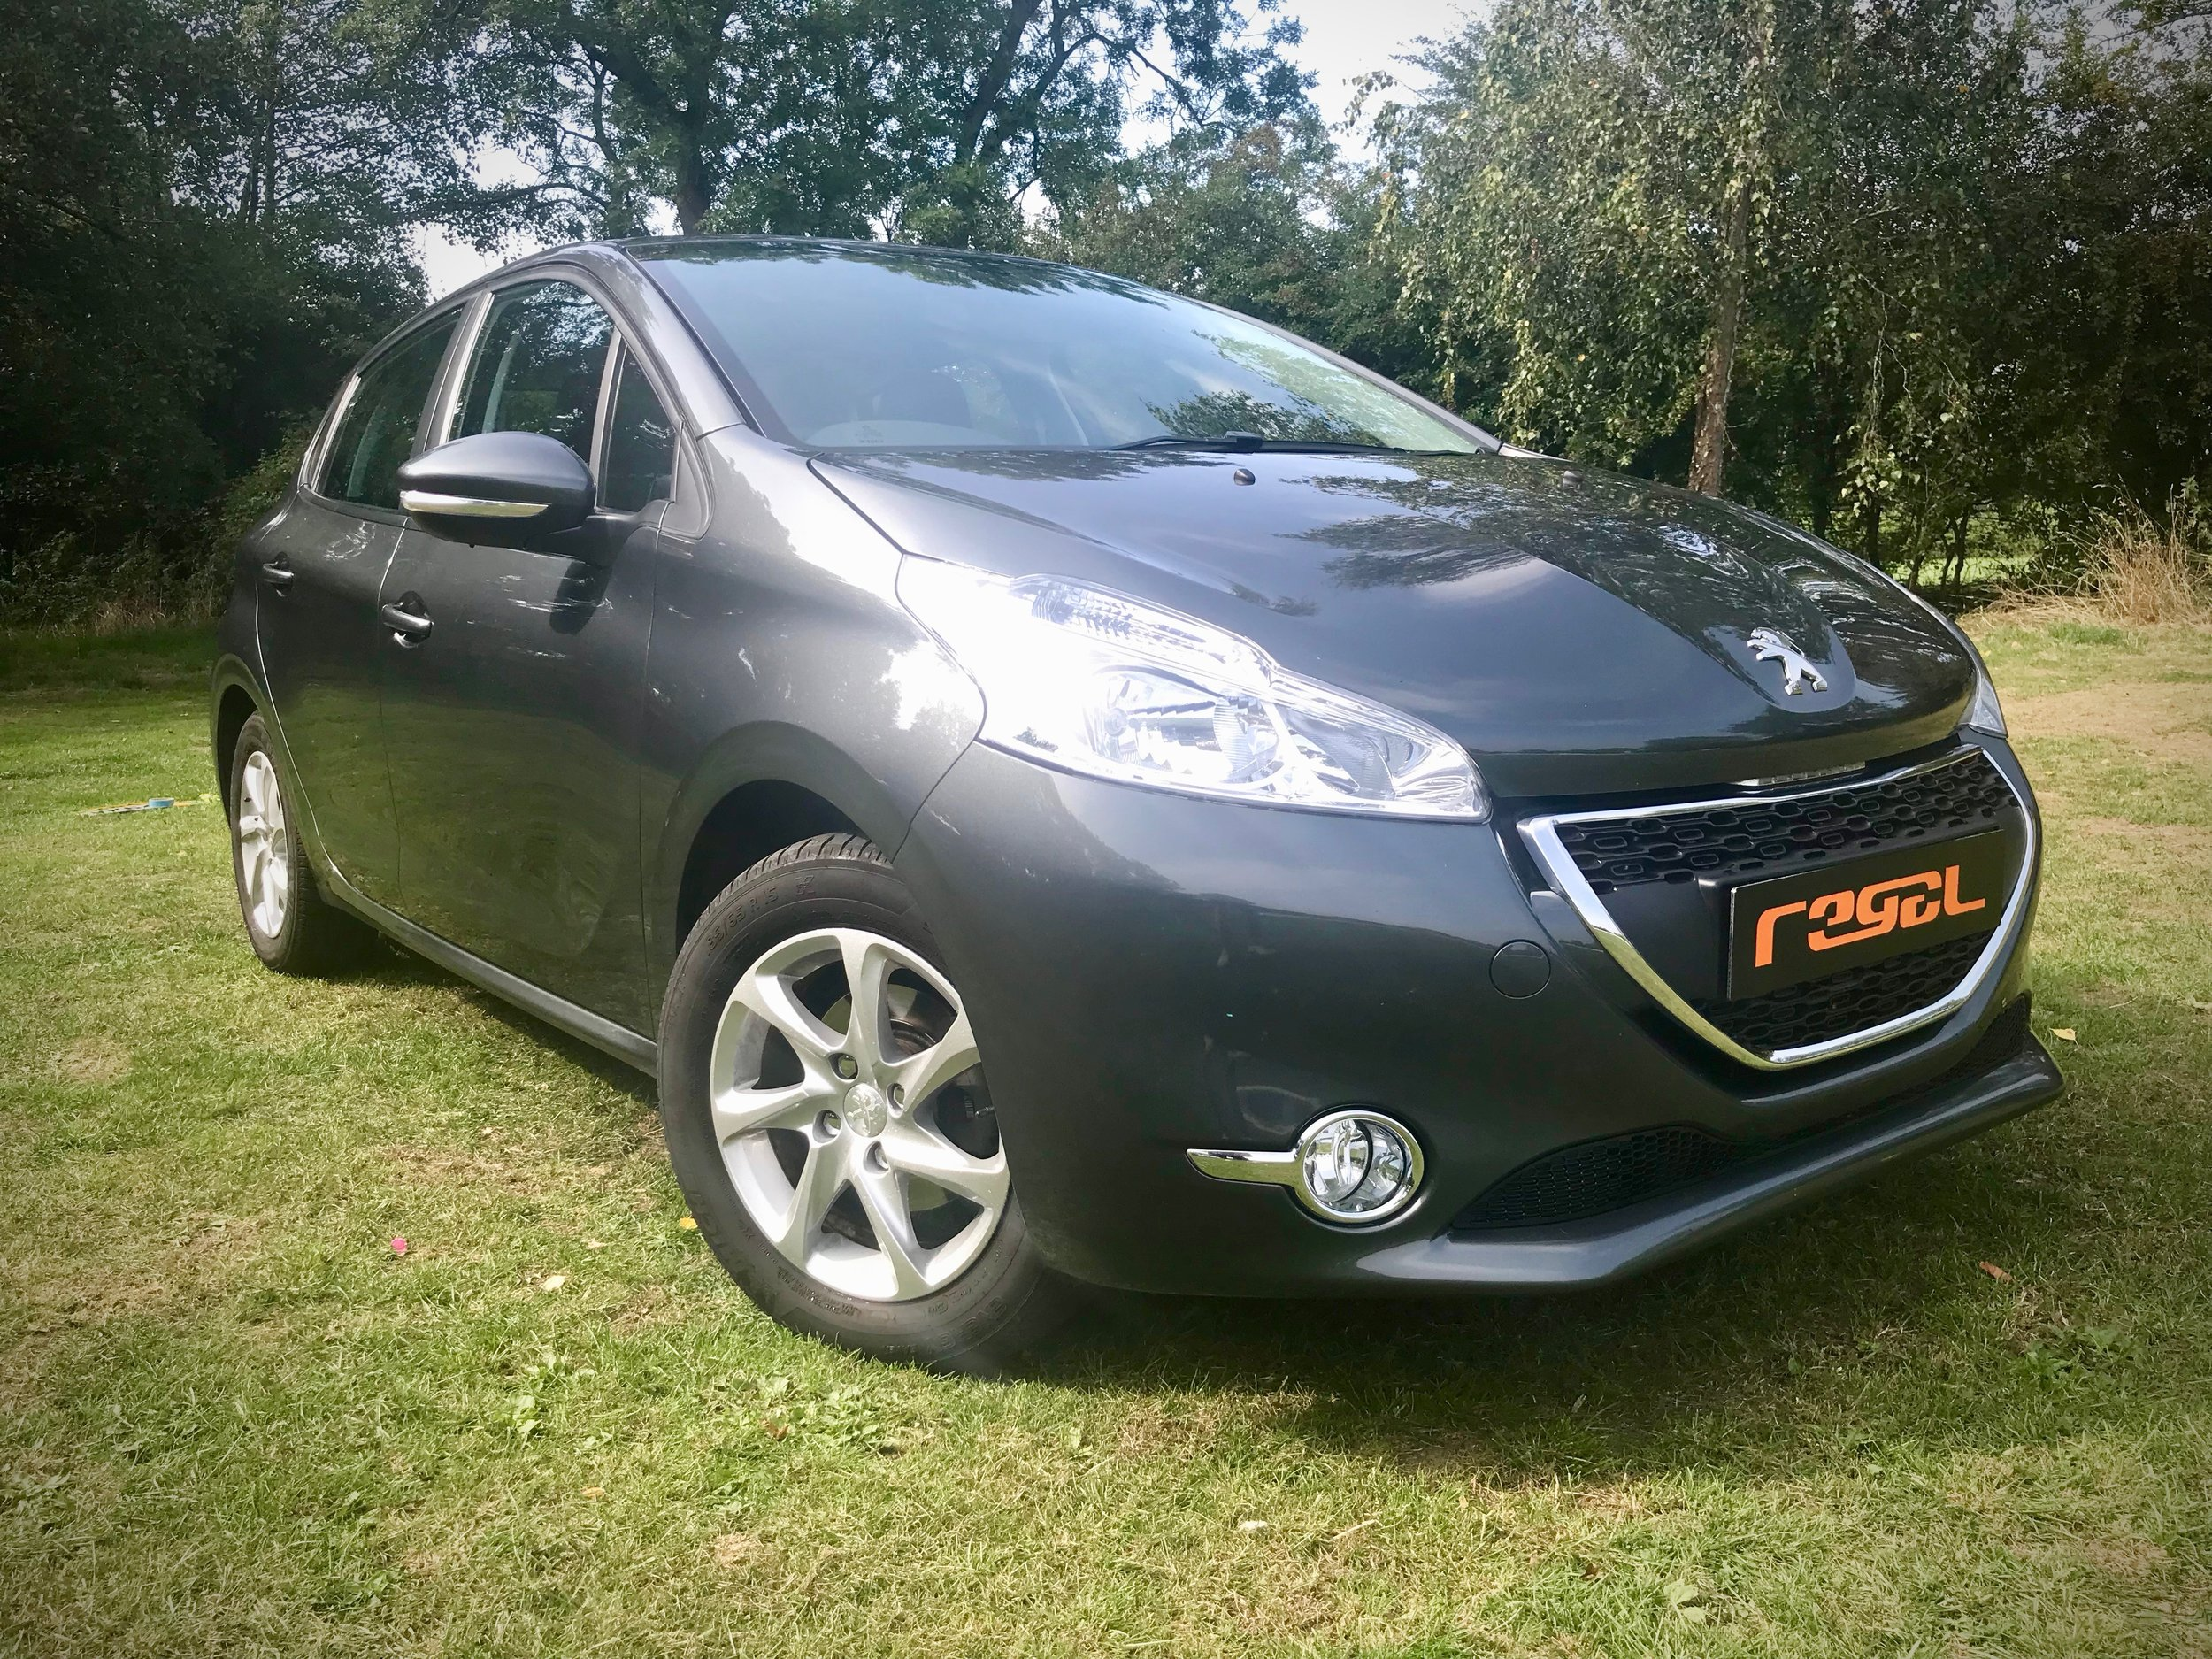 peugeot-208-vti-active-forsale-regalmotion-regalpreowned-usedcar-redditch-bromsgrove-worcestershire-6479-2.jpeg